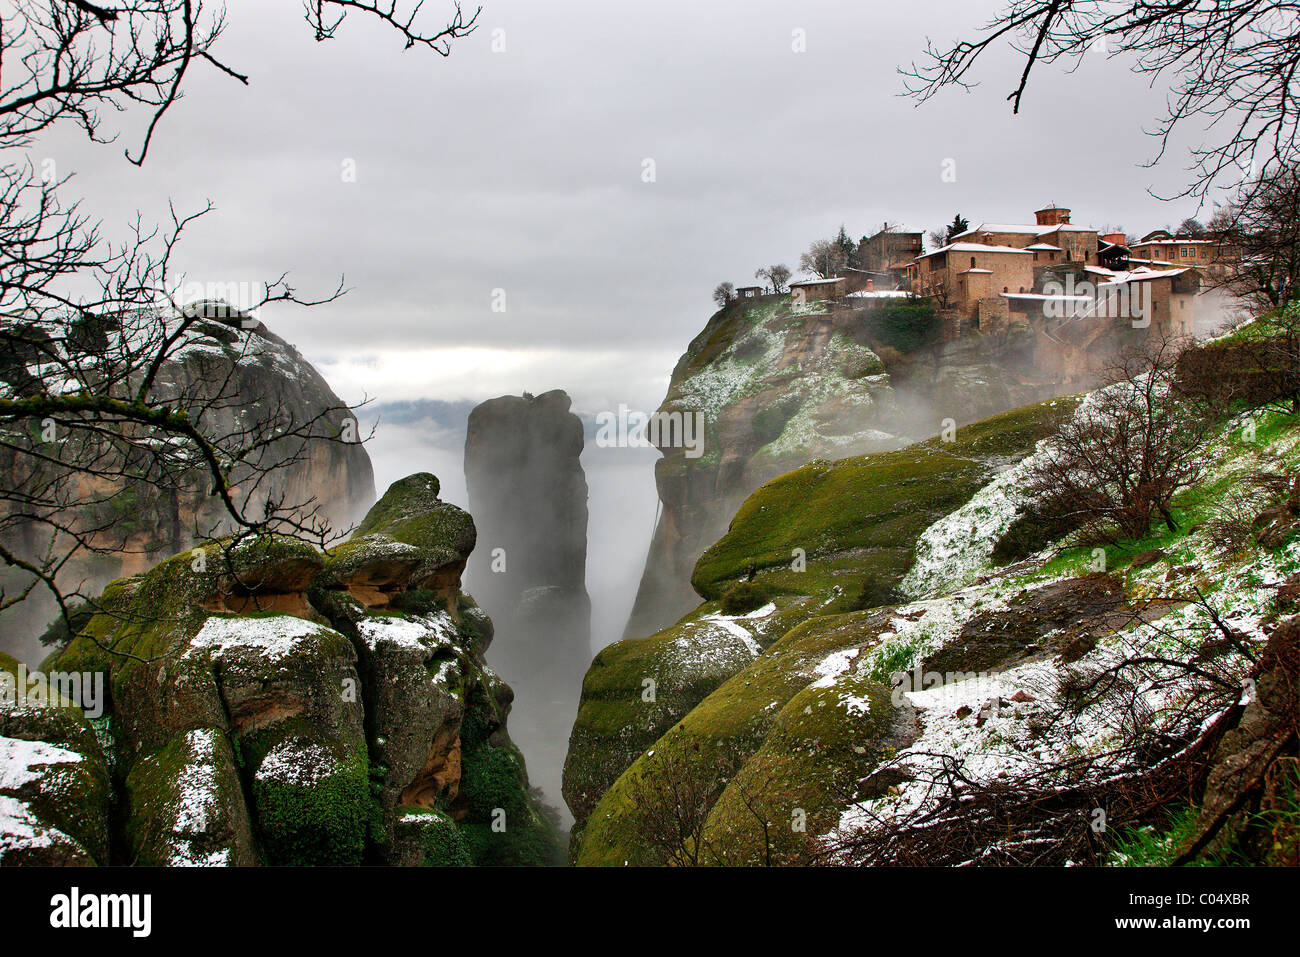 Greece, Meteora. Winter atmosphere with fog and snow. On the upper right part the Great  Meteoron monastery. - Stock Image